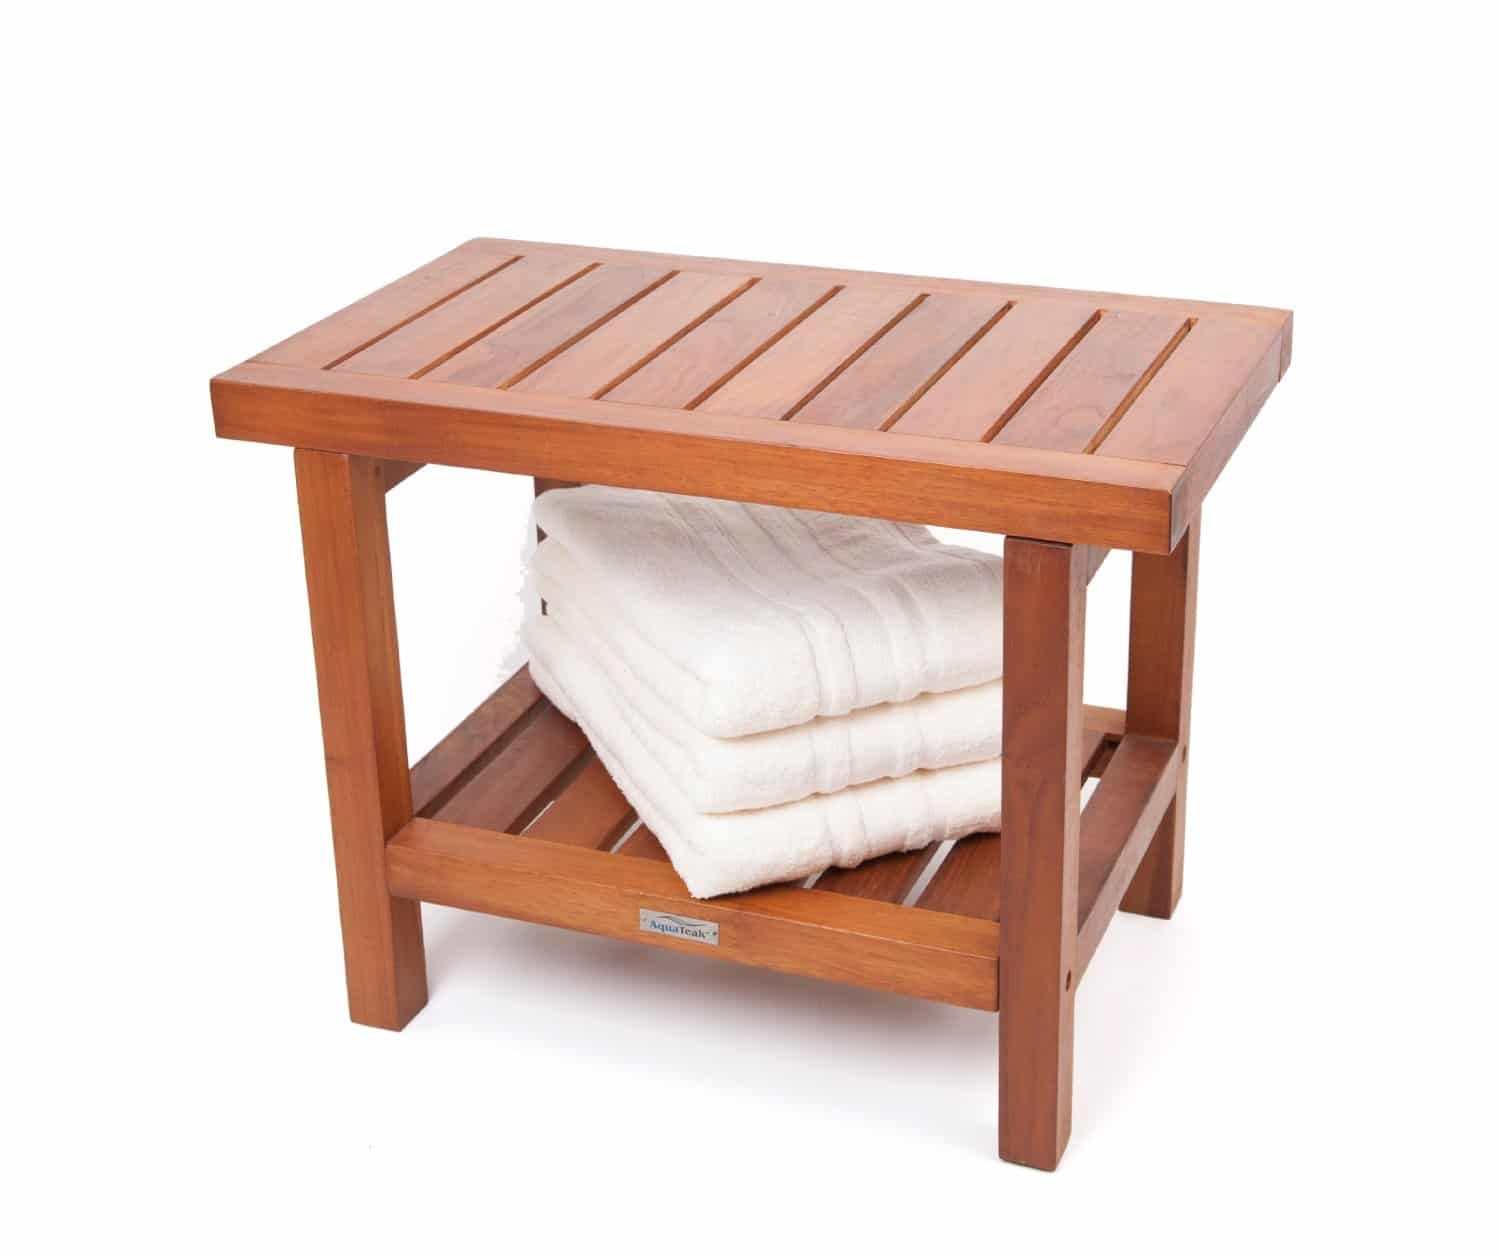 20 ergonomic teak spa stool with shelf and lift aide arms teak patio furniture world Bath bench